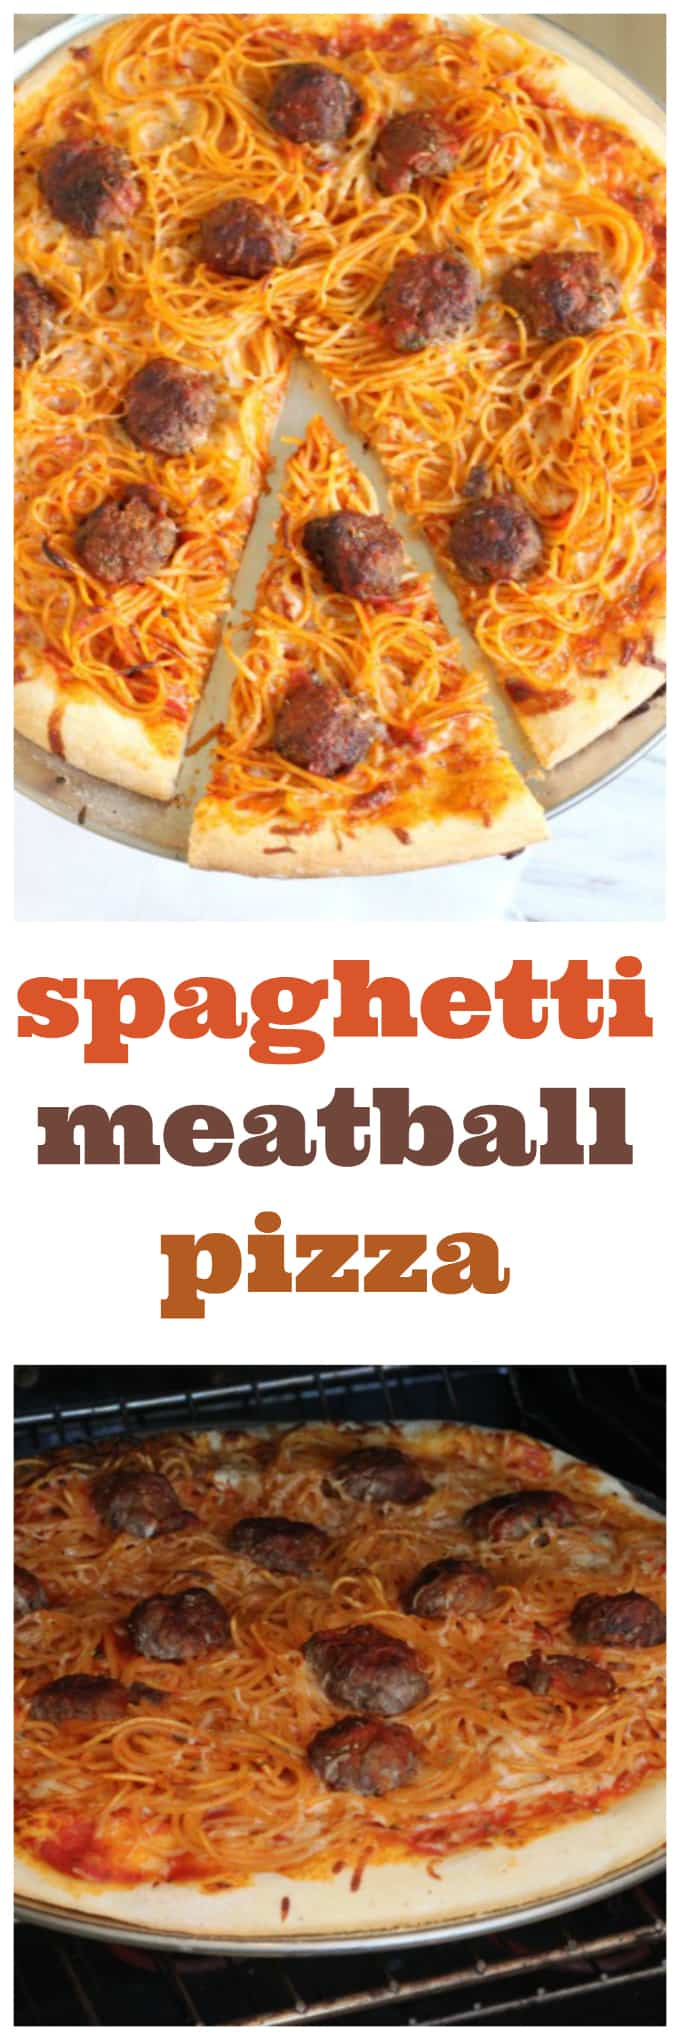 spaghetti and meatball pizza @createdbydiane